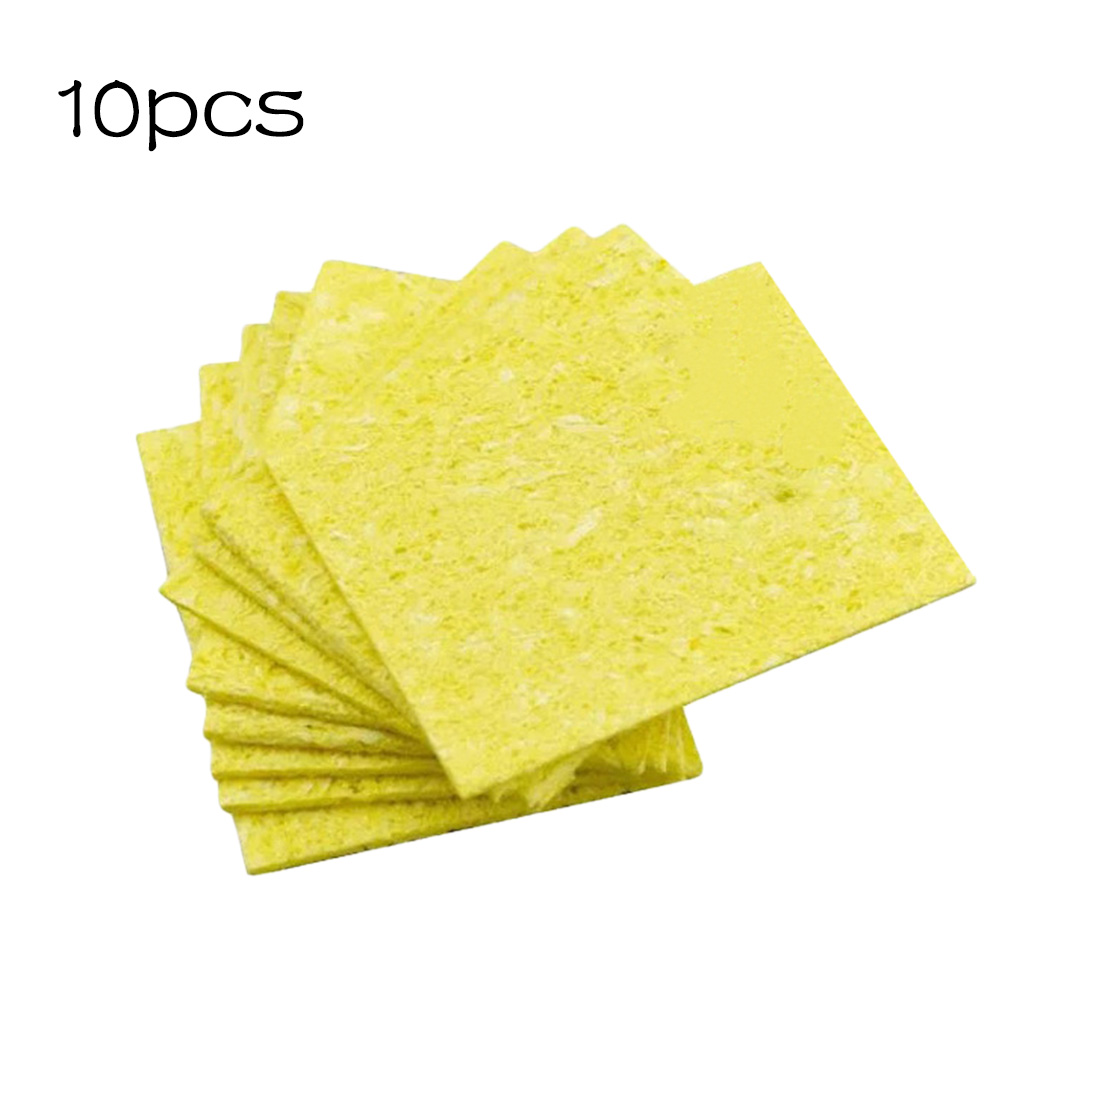 10pcs High Temperature Enduring Condense Electric Welding Soldering Iron Cleaning Sponge Yellow Welding Accessories